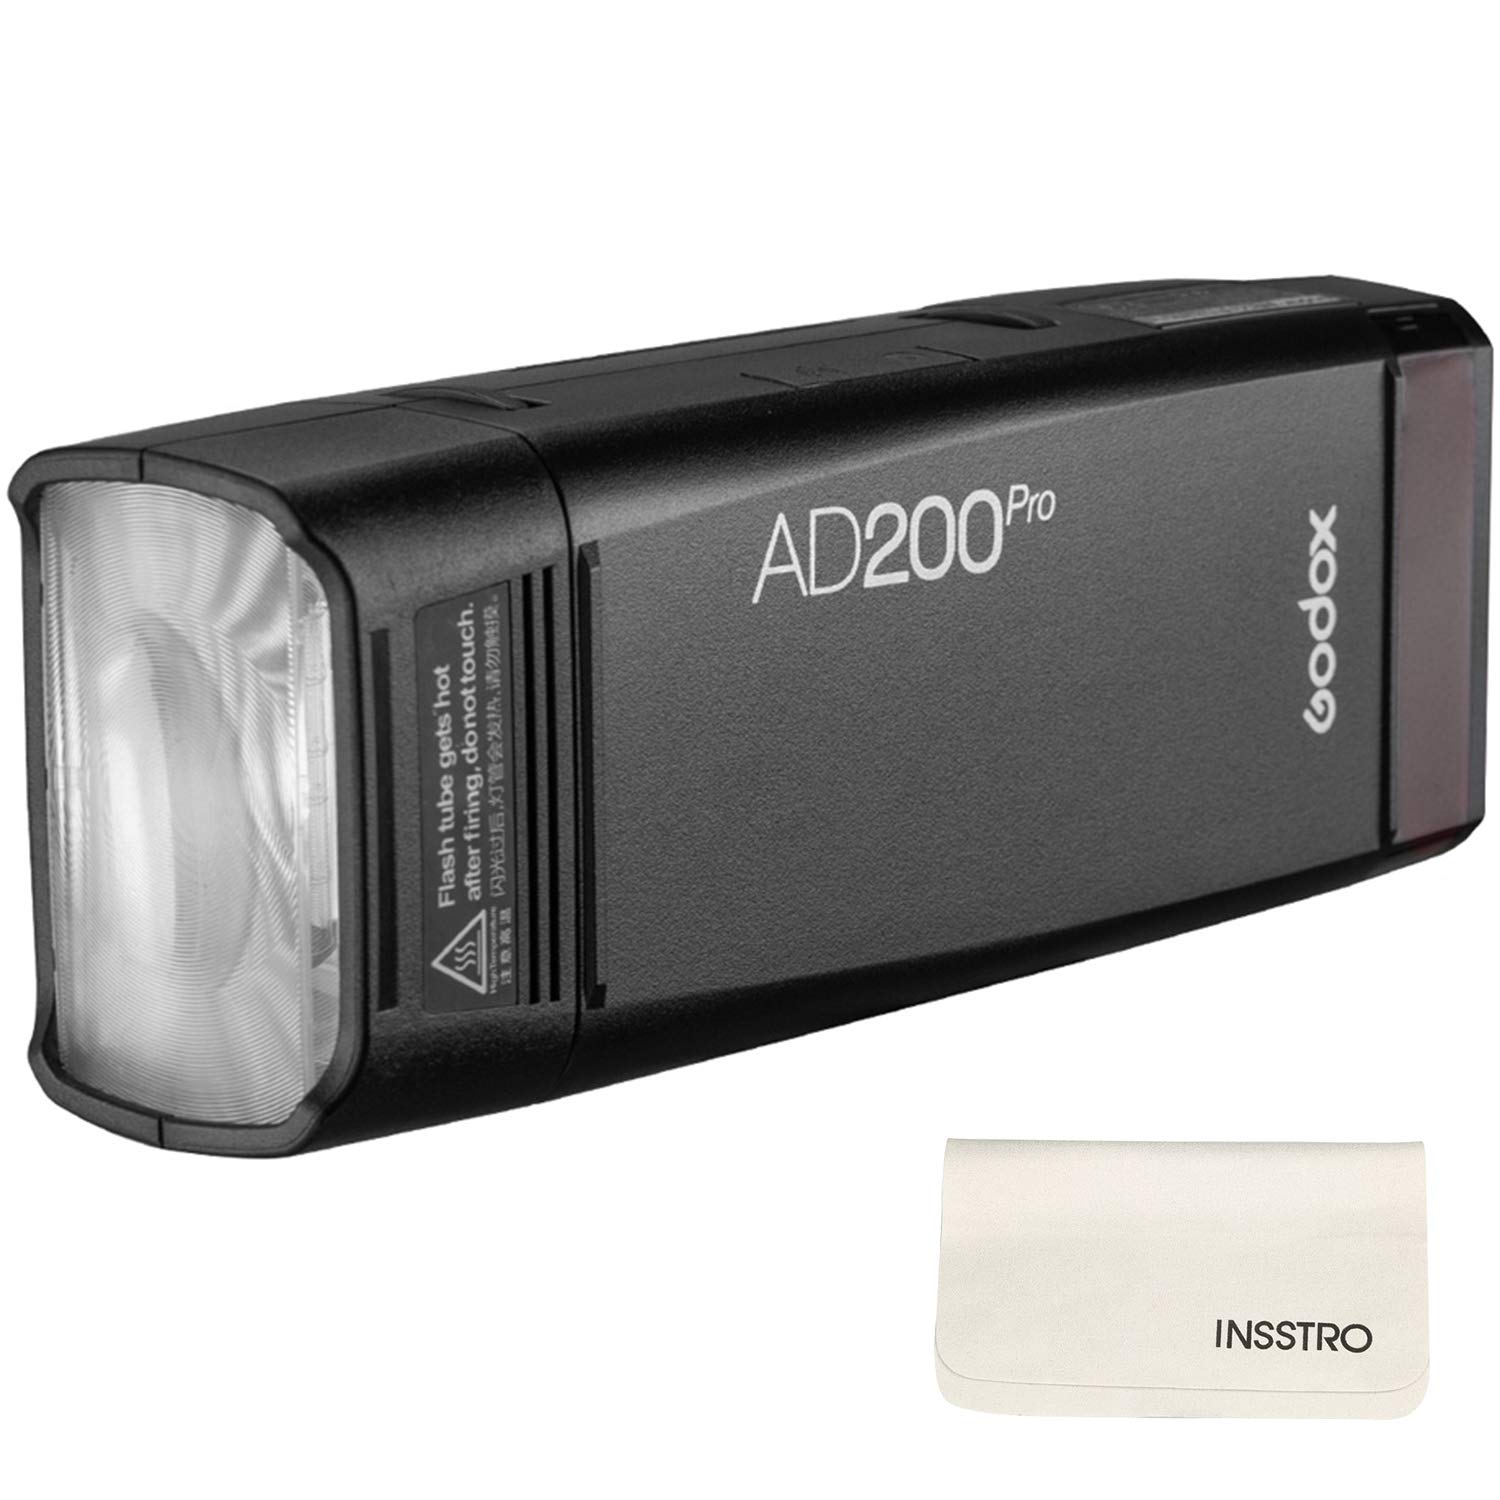 Godox AD200Pro Pocket Flash 2.4G TTL Speedlite Flash Strobe 1/8000s HSS Monolight with 2900mAh Lithium Battery 200WS and Bare Bulb Flash Head to Cover 500 Flashes and Recycle in 0.01-1.8 Sec by Godox